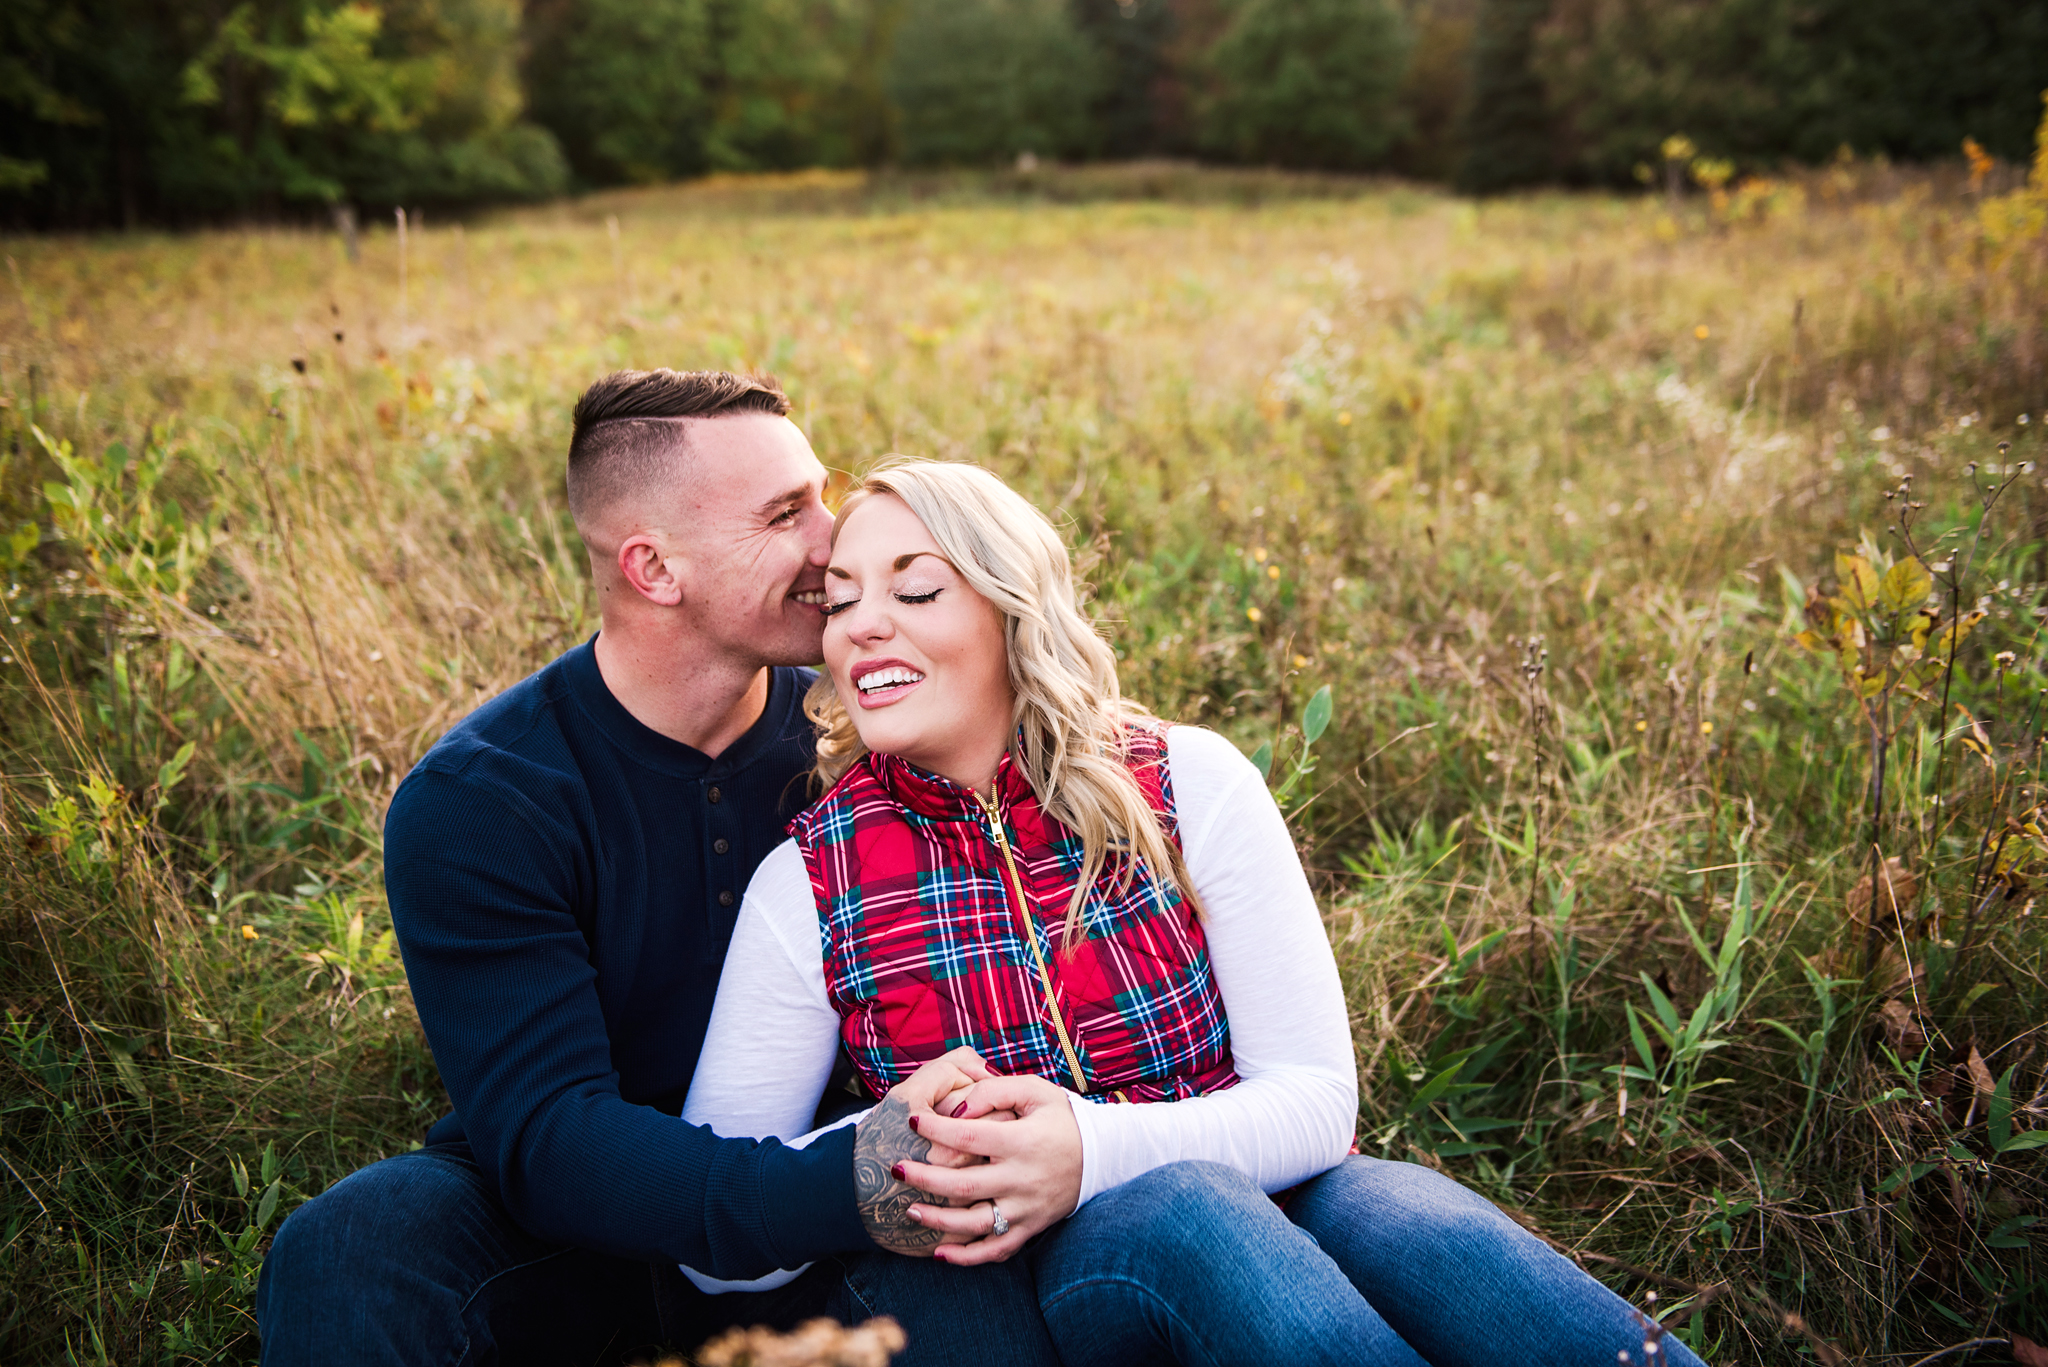 Tinker_Nature_Park_Rochester_Couples_Session_JILL_STUDIO_Rochester_NY_Photographer_DSC_4972.jpg